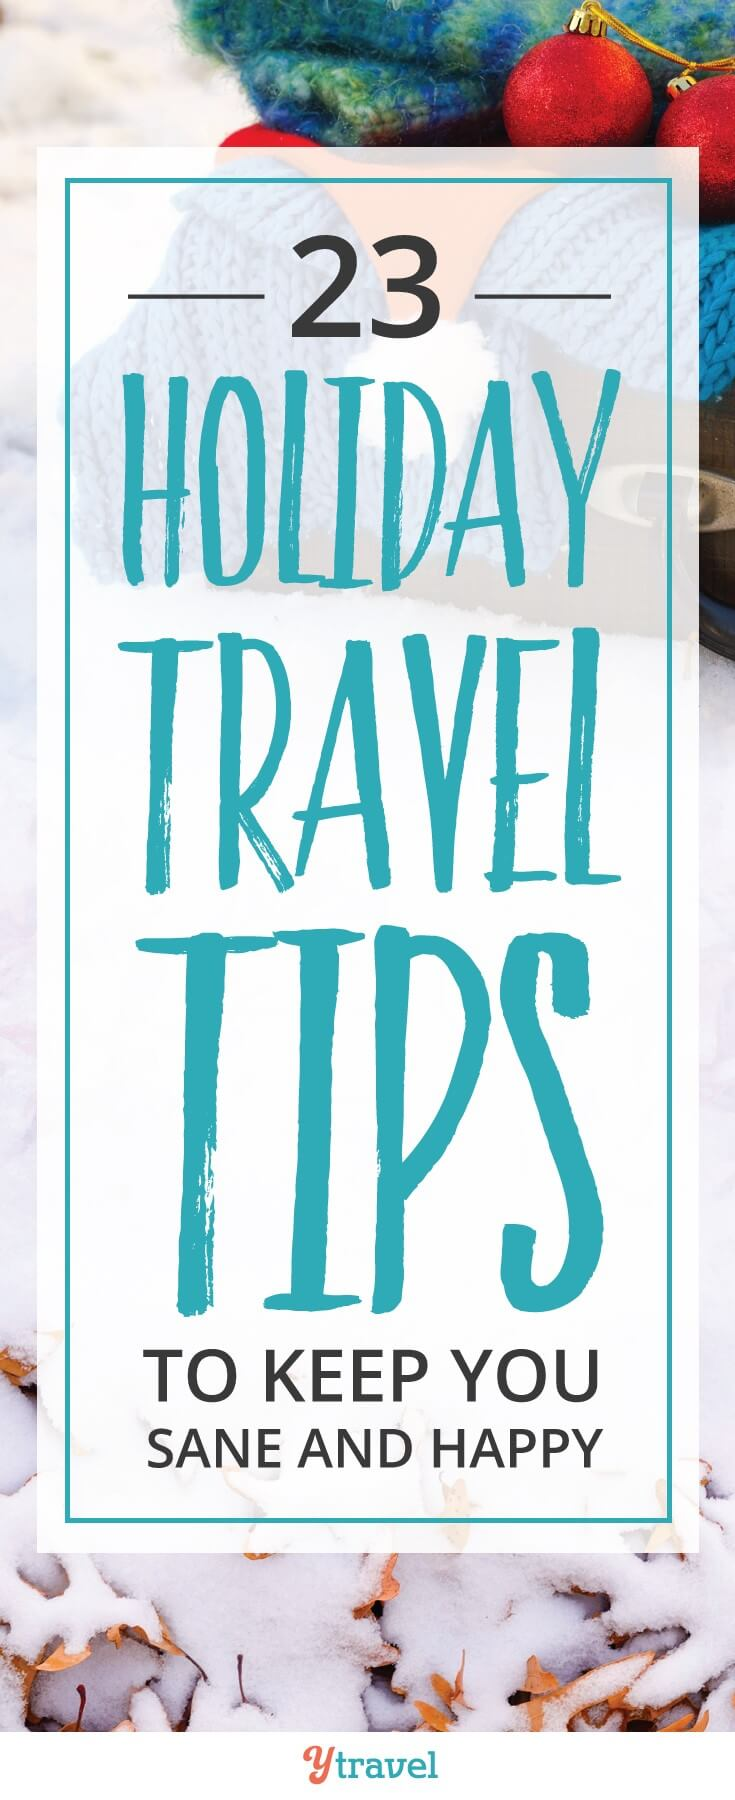 Thinking of traveling this holiday season and Christmas? Use these 23 holiday travel tips to help you feel sane and happy. Holiday travel can be one chaotic mess. Good luck and enjoy and please share with a friend! #christmas #holidaytravel #traveltips